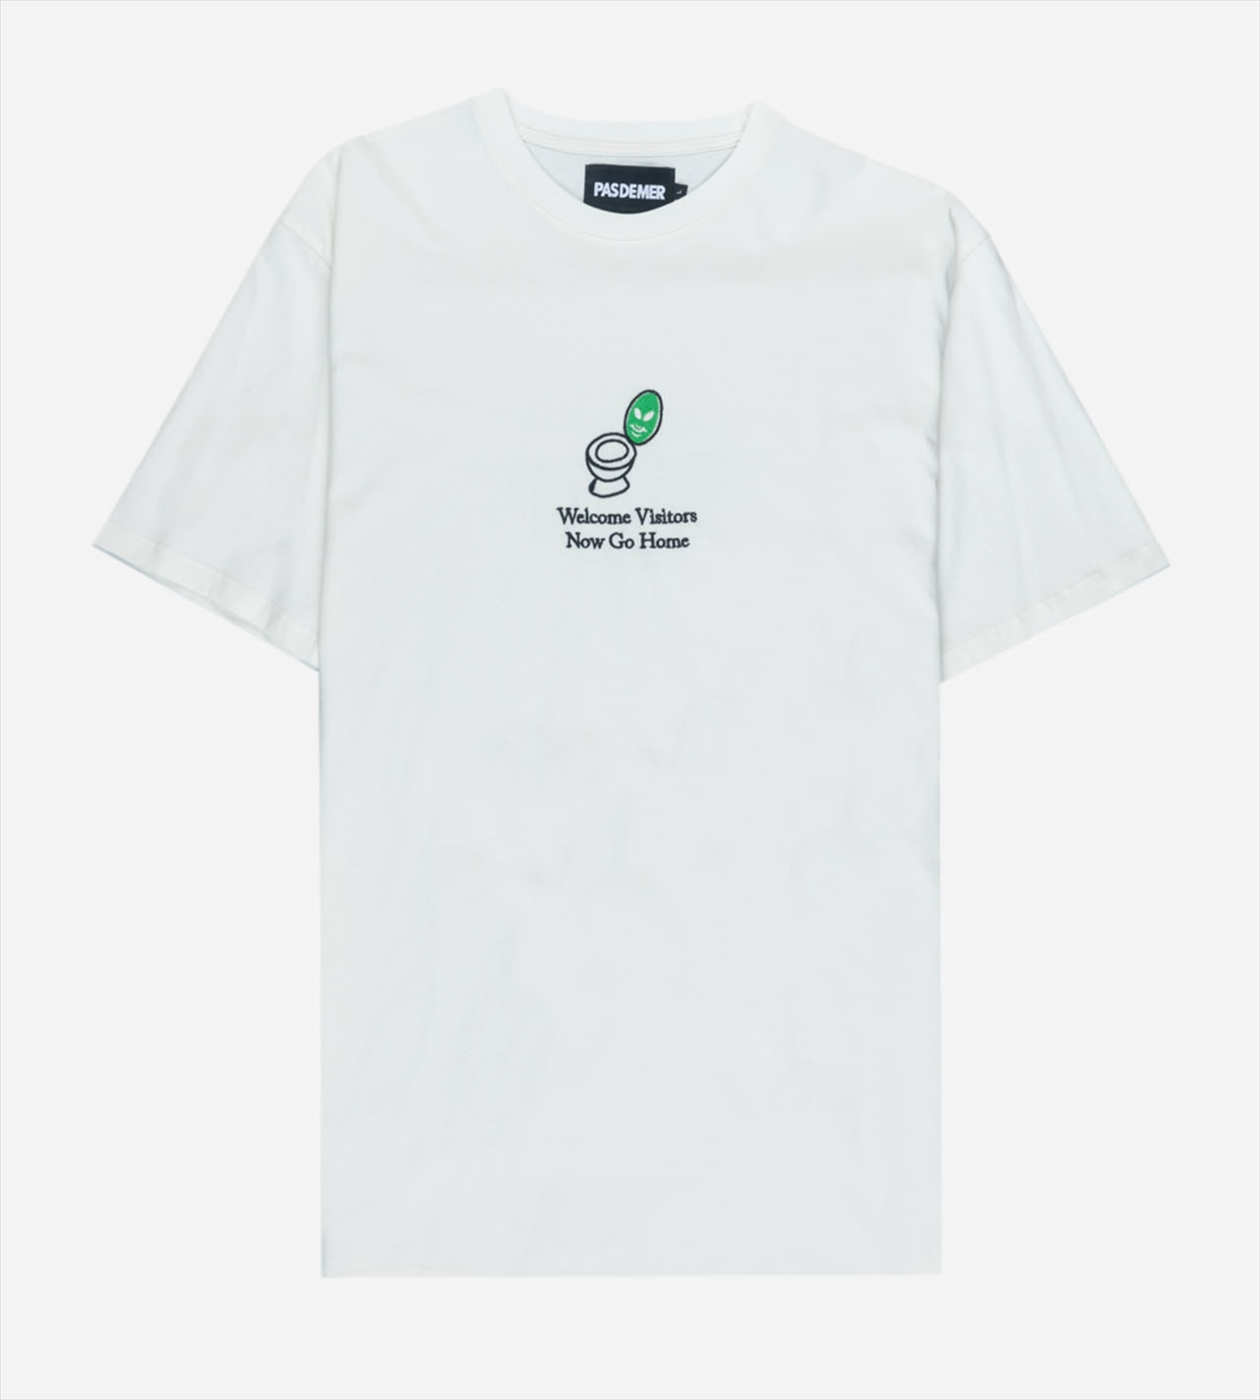 【PAS DE MER/パドゥメ】WELCOME VISITORS T-SHIRT  Tシャツ / NATURAL